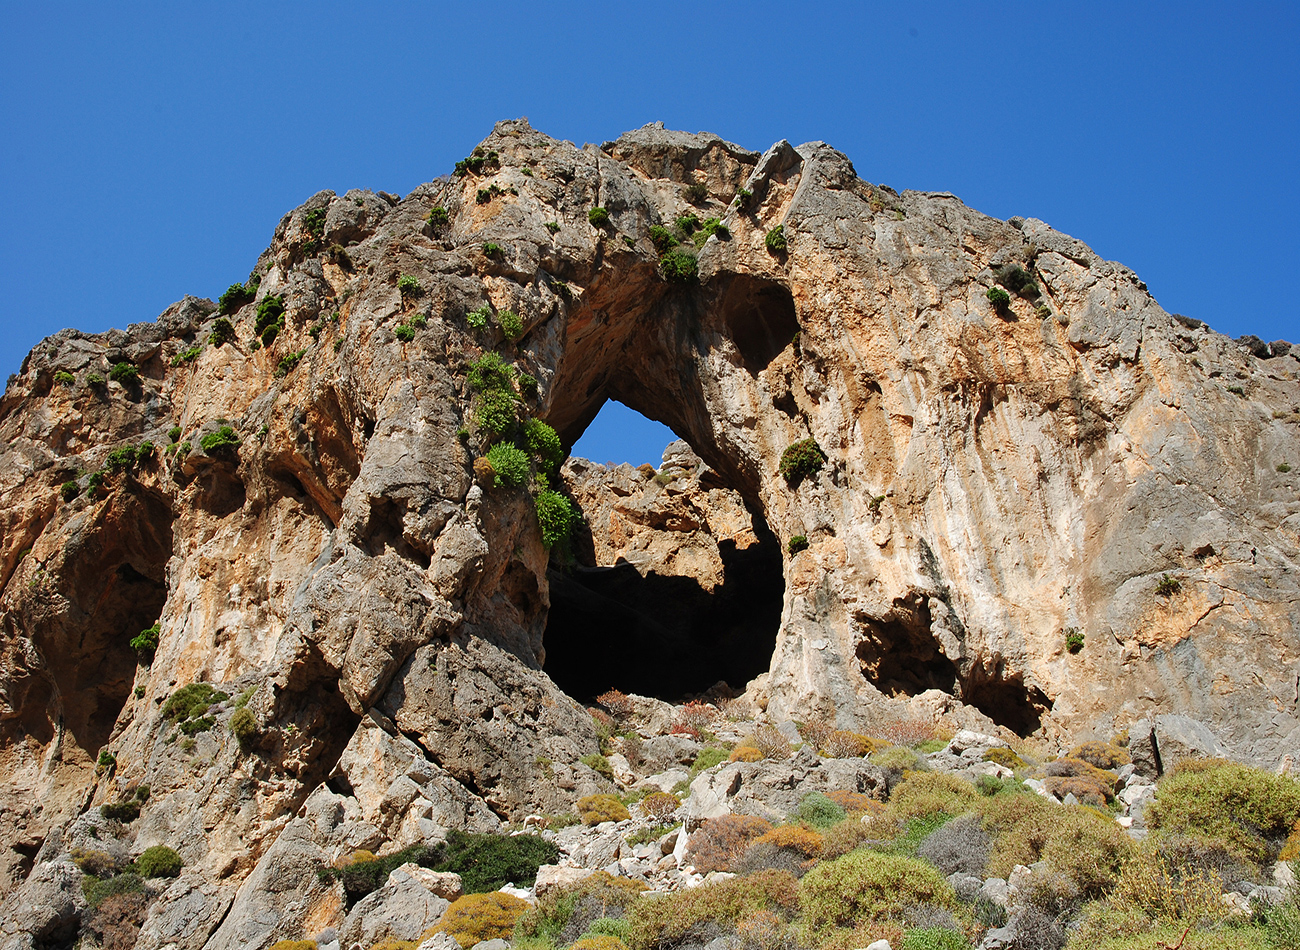 Rock formations in the geopark